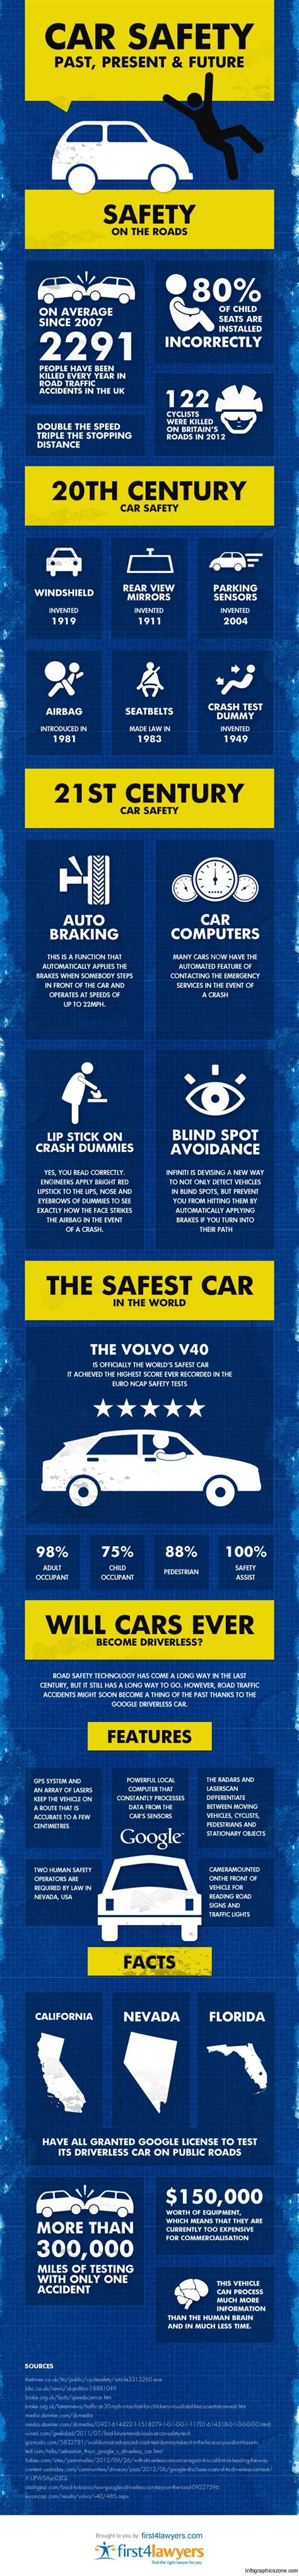 Car Safety Past, Present & Future (infographic